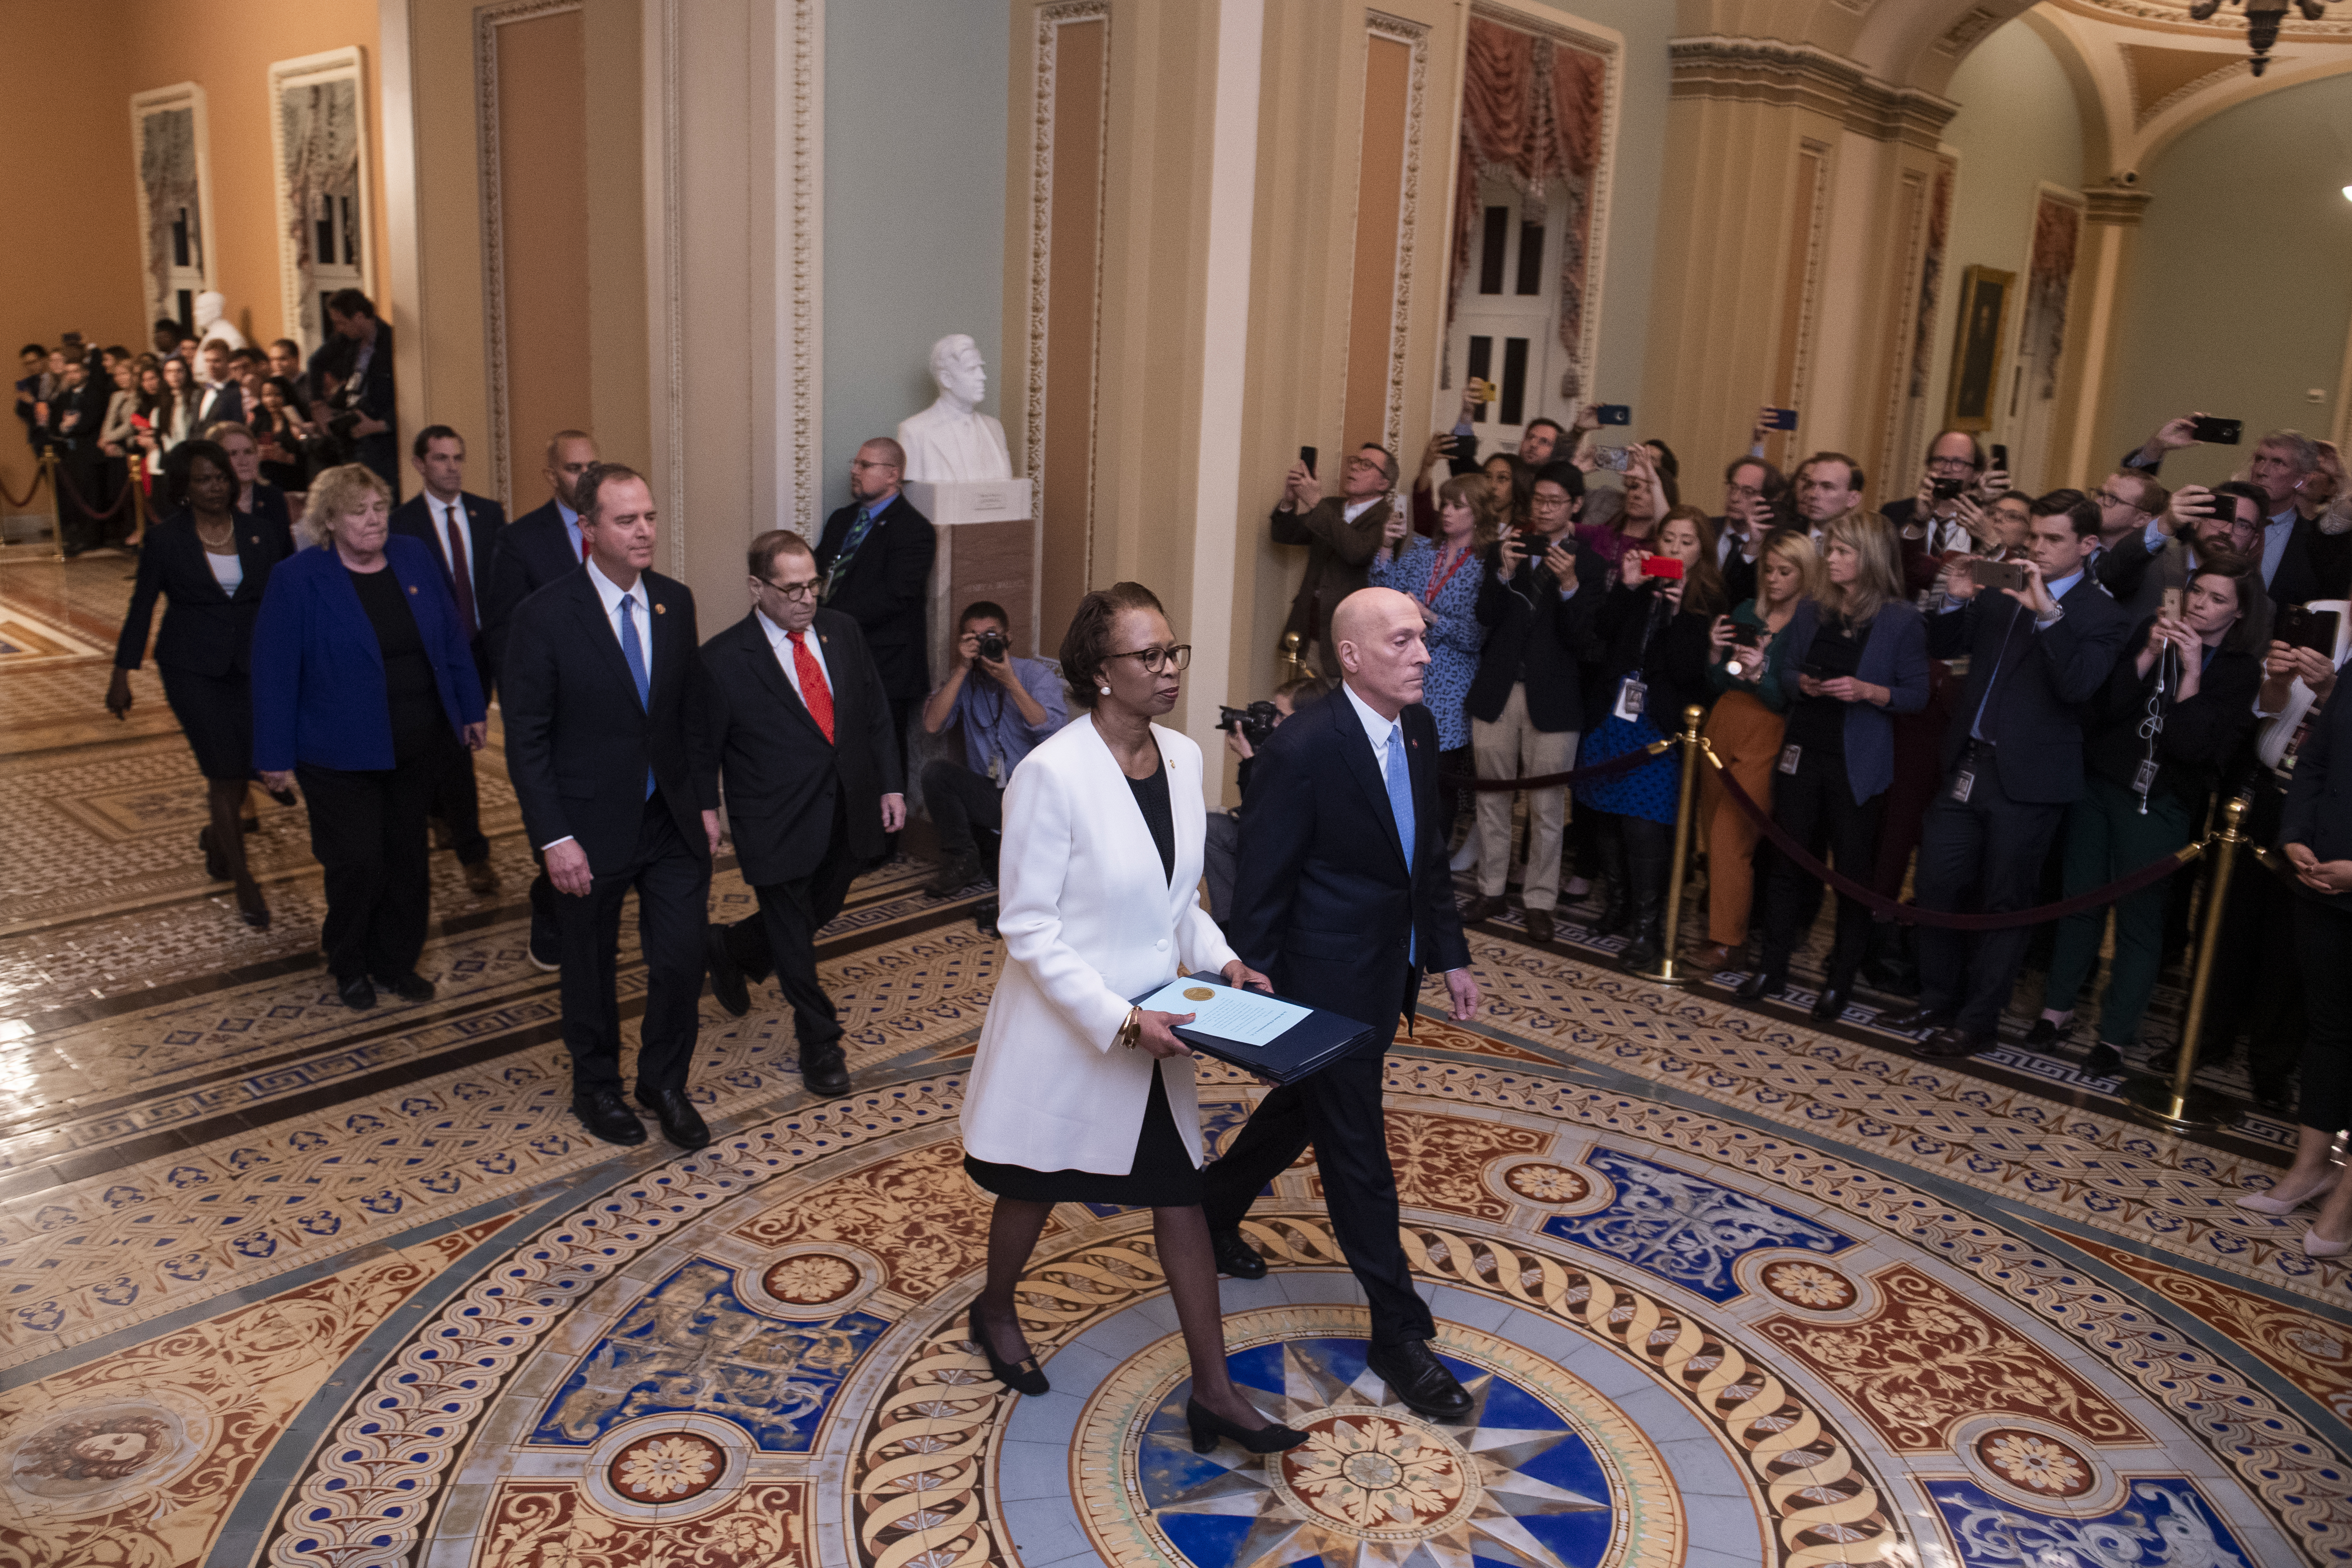 UNITED STATES - JANUARY 15: House Clerk Cheryl Johnson and House Sergeant at Arms Paul D. Irving, followed by impeachment managers Reps. Adam Schiff, D-Calif., Jerrold Nadler, D-N.Y., Zoe Lofgren, D-Calif., Hakeem Jeffries, D-N.Y., Jason Crow, D-Colo., Val Demings, D-Fla., and Sylvia Garcia, D-Texas, walk the articles of impeachment against President Donald Trump from the House to the Senate floor on Wednesday, January 15, 2020. (Photo By Tom Williams/CQ Roll Call)